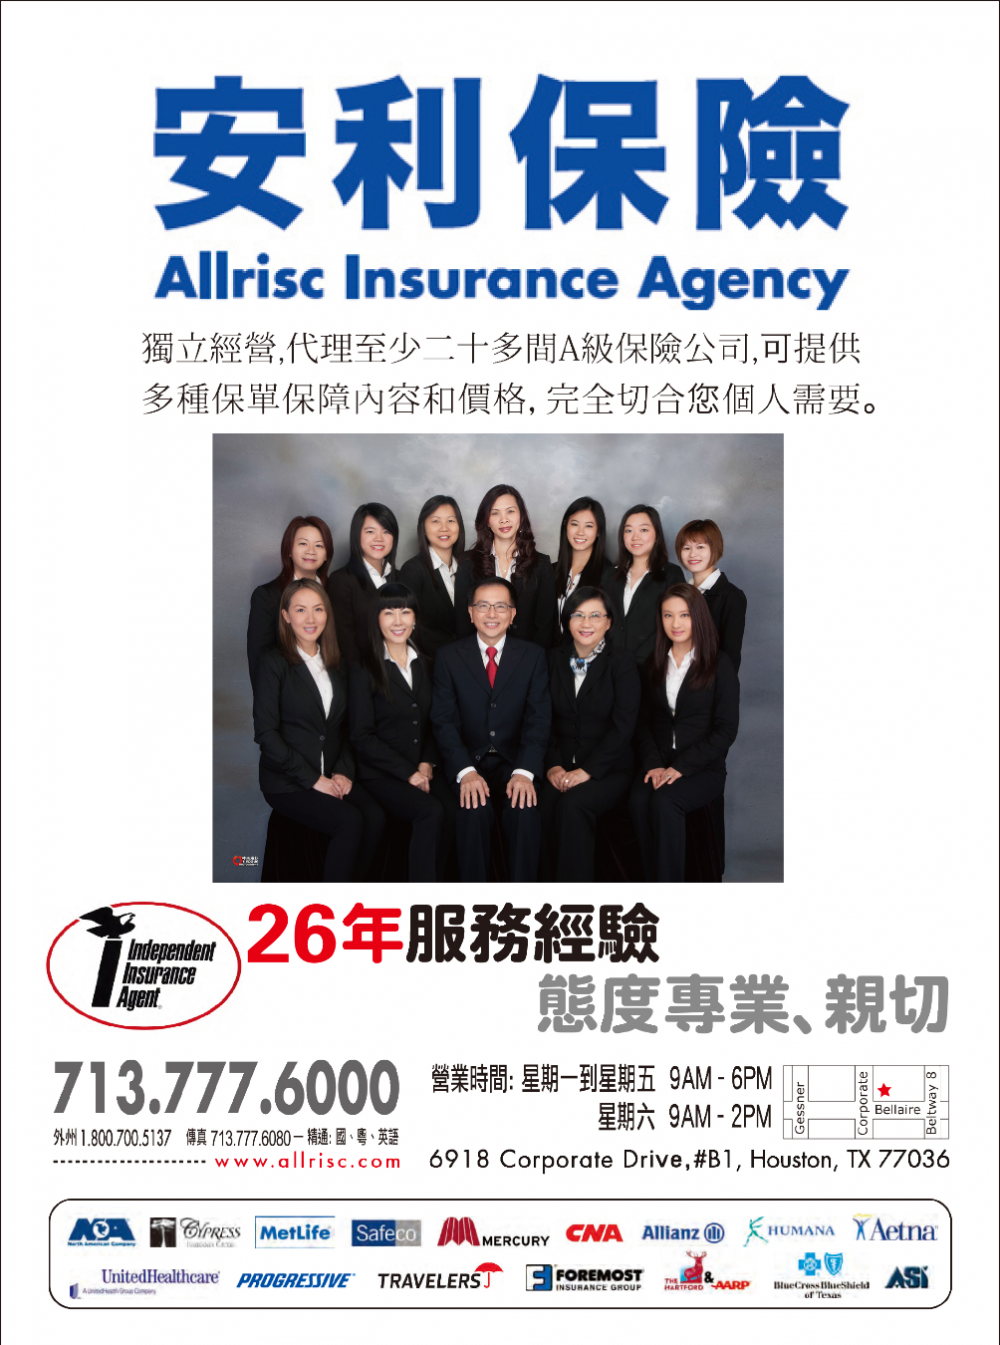 ALLRISC INSURANCE AGENCY 安利保險